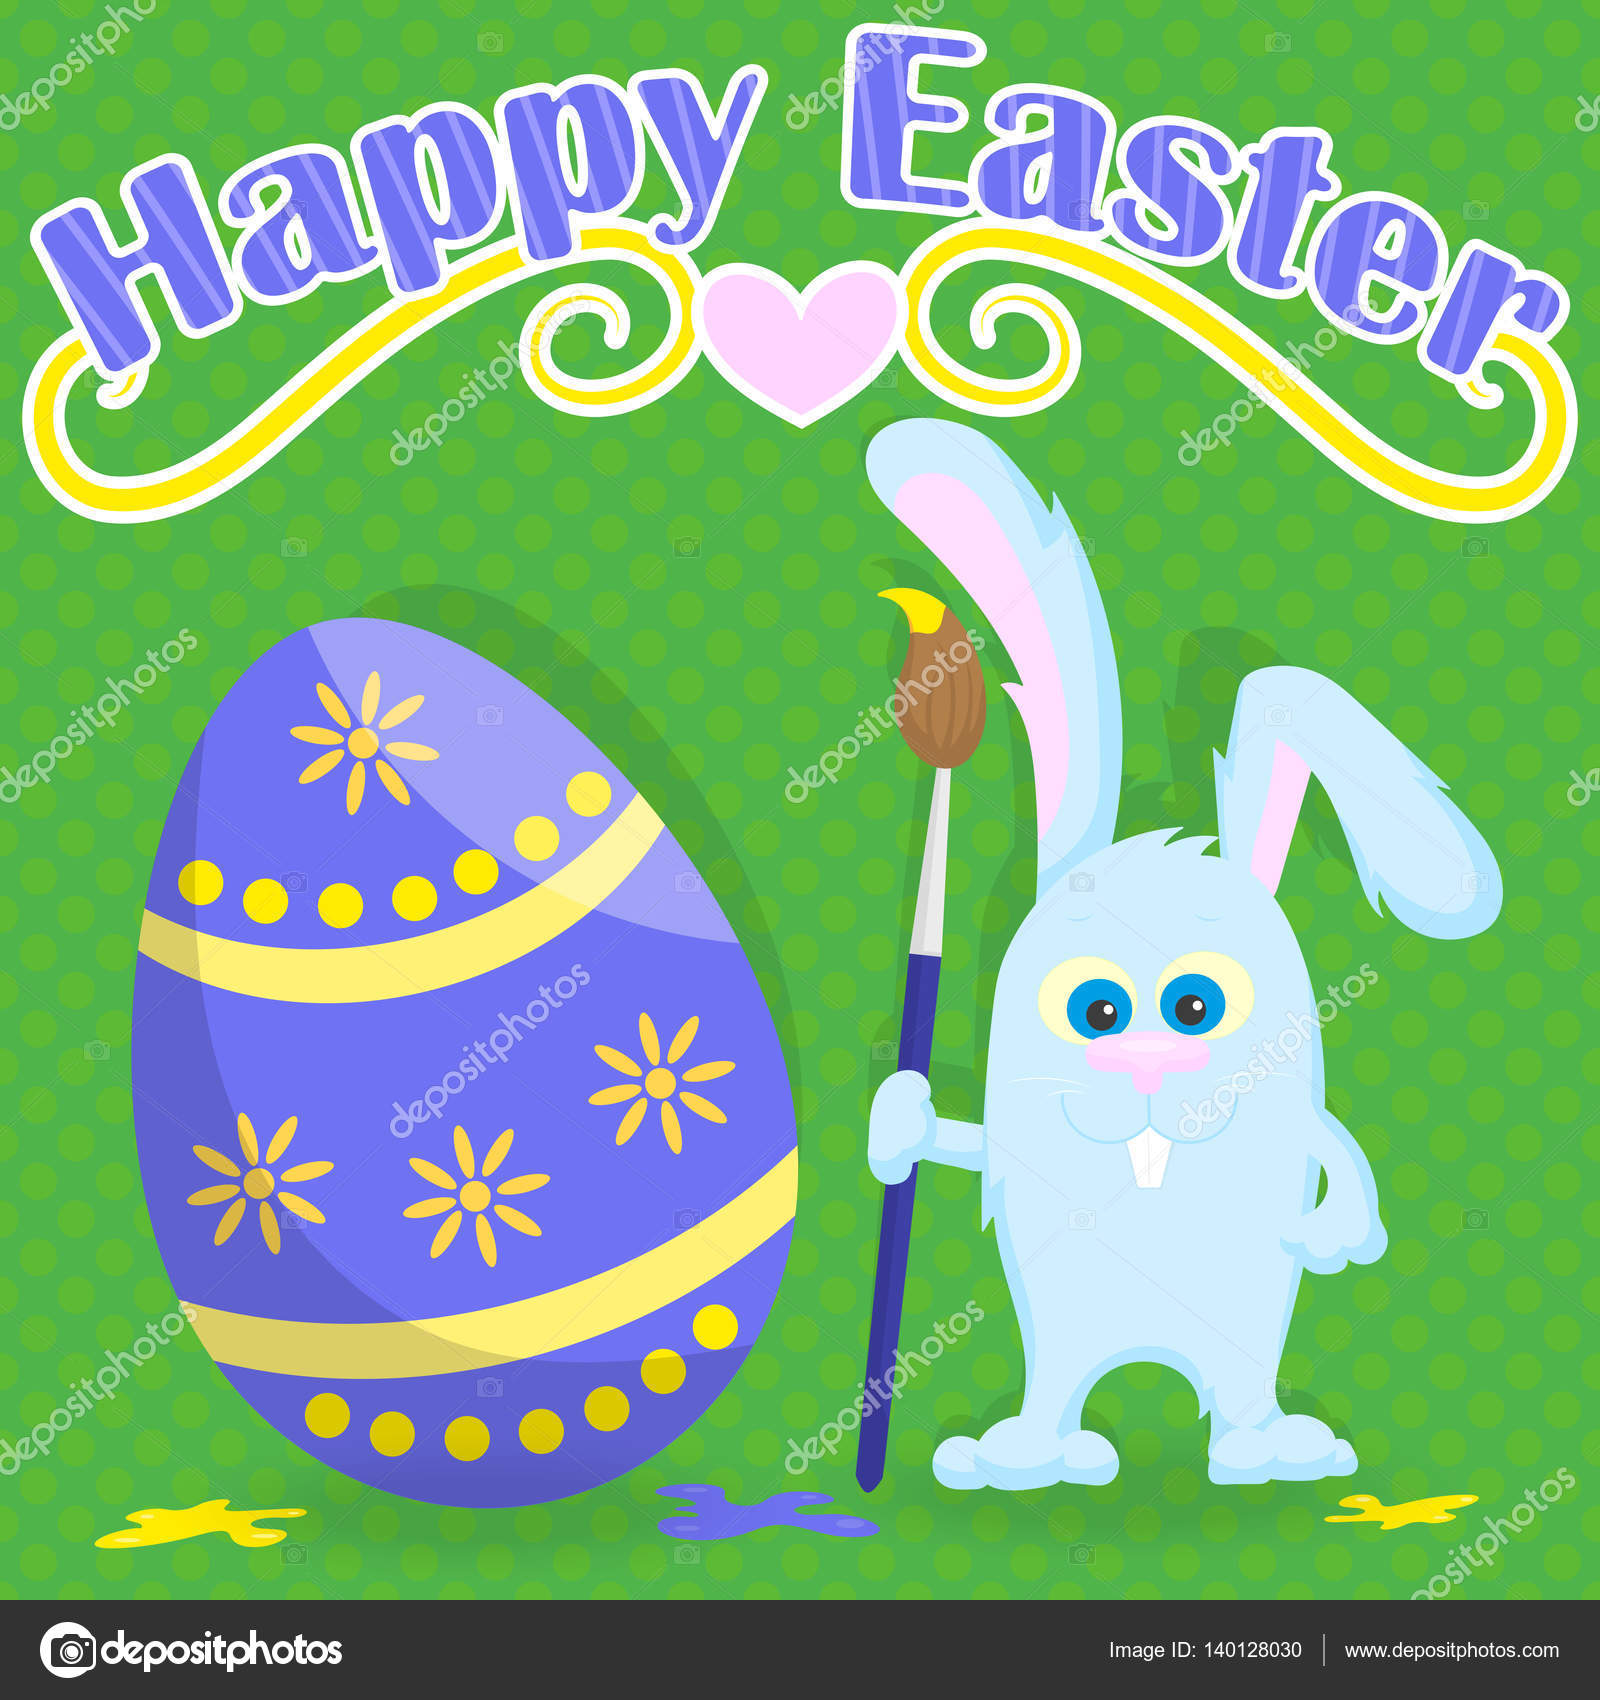 Greeting Card For Easter Funny Cartoon Easter Bunny With Paintbrush